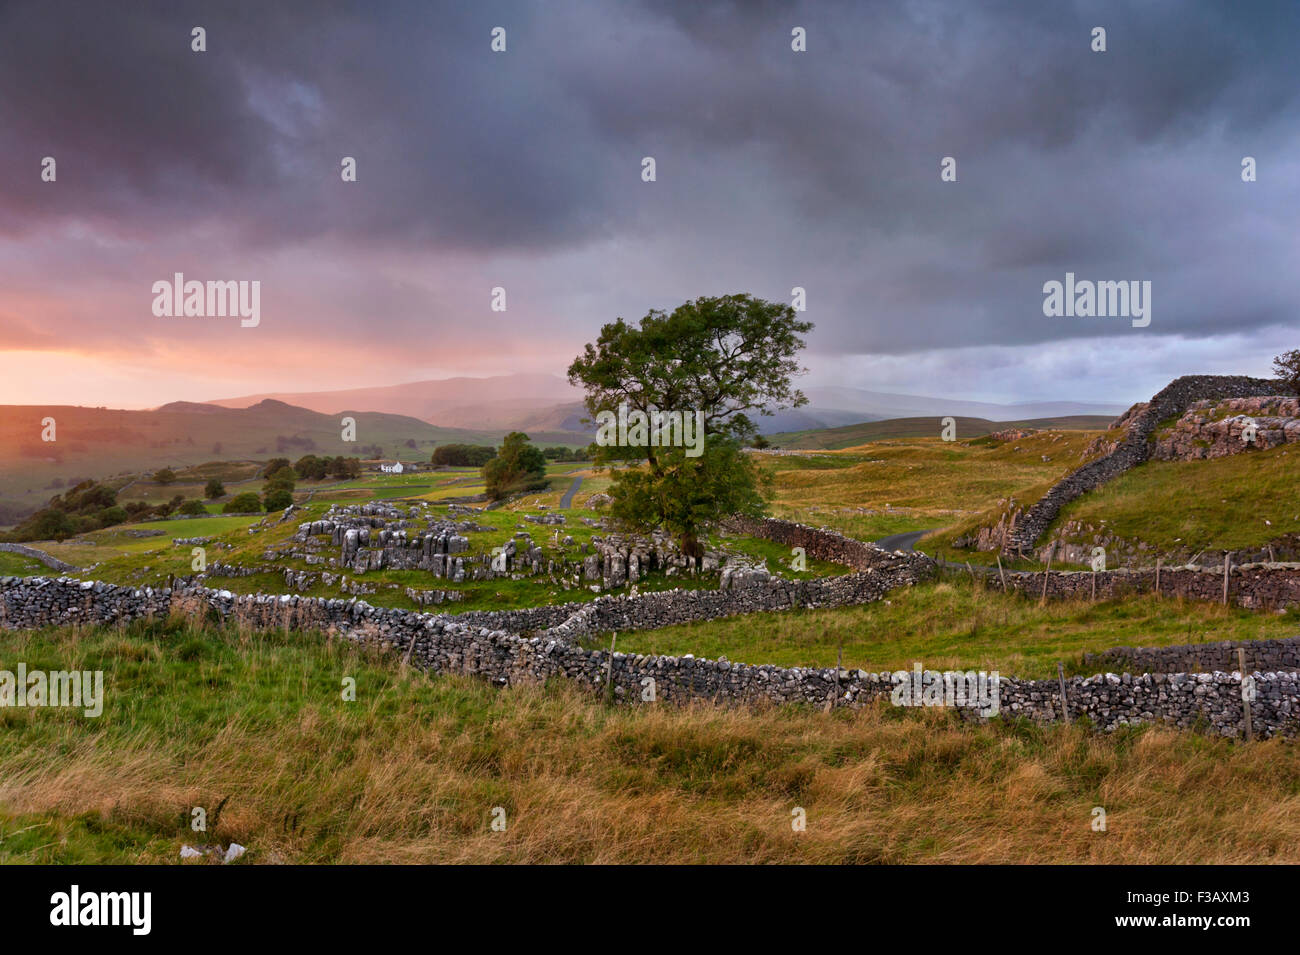 Sunset over Winskill Stones, Langcliffe, near Settle, Yorkshire Dales National Park, UK - Stock Image